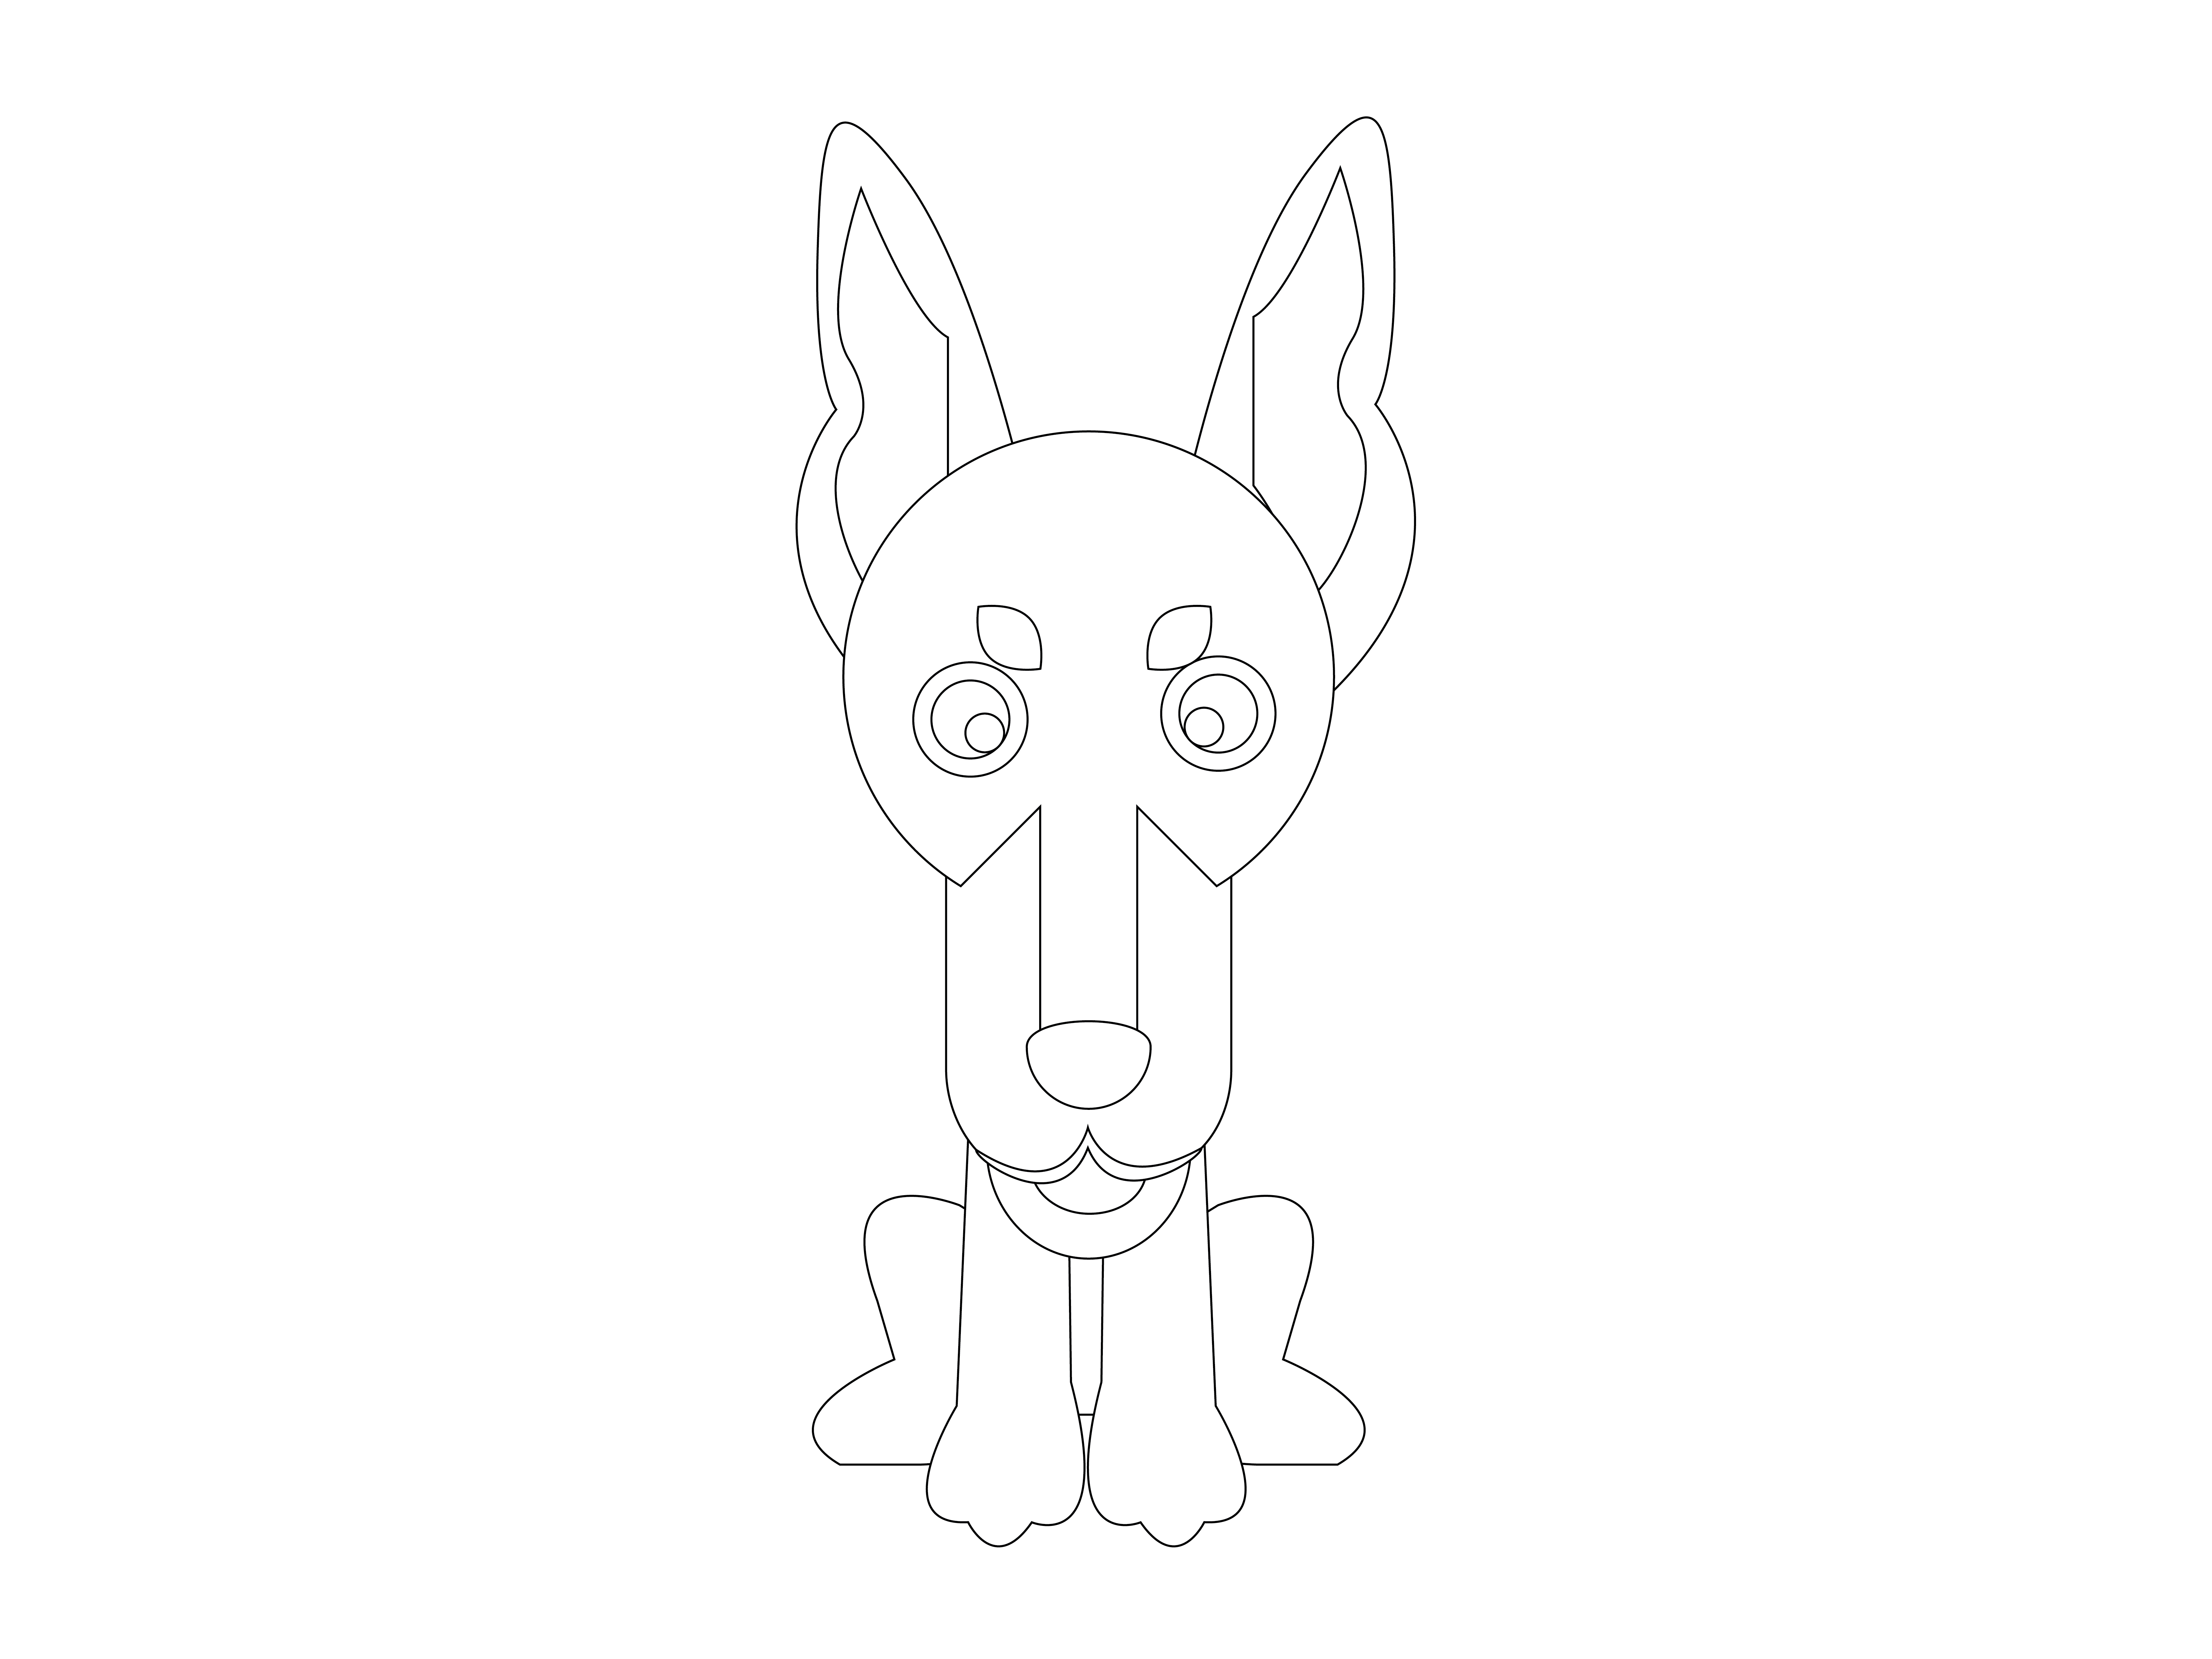 Dog Flat Design Vector Icon Outline Graphic By 1riaspengantin